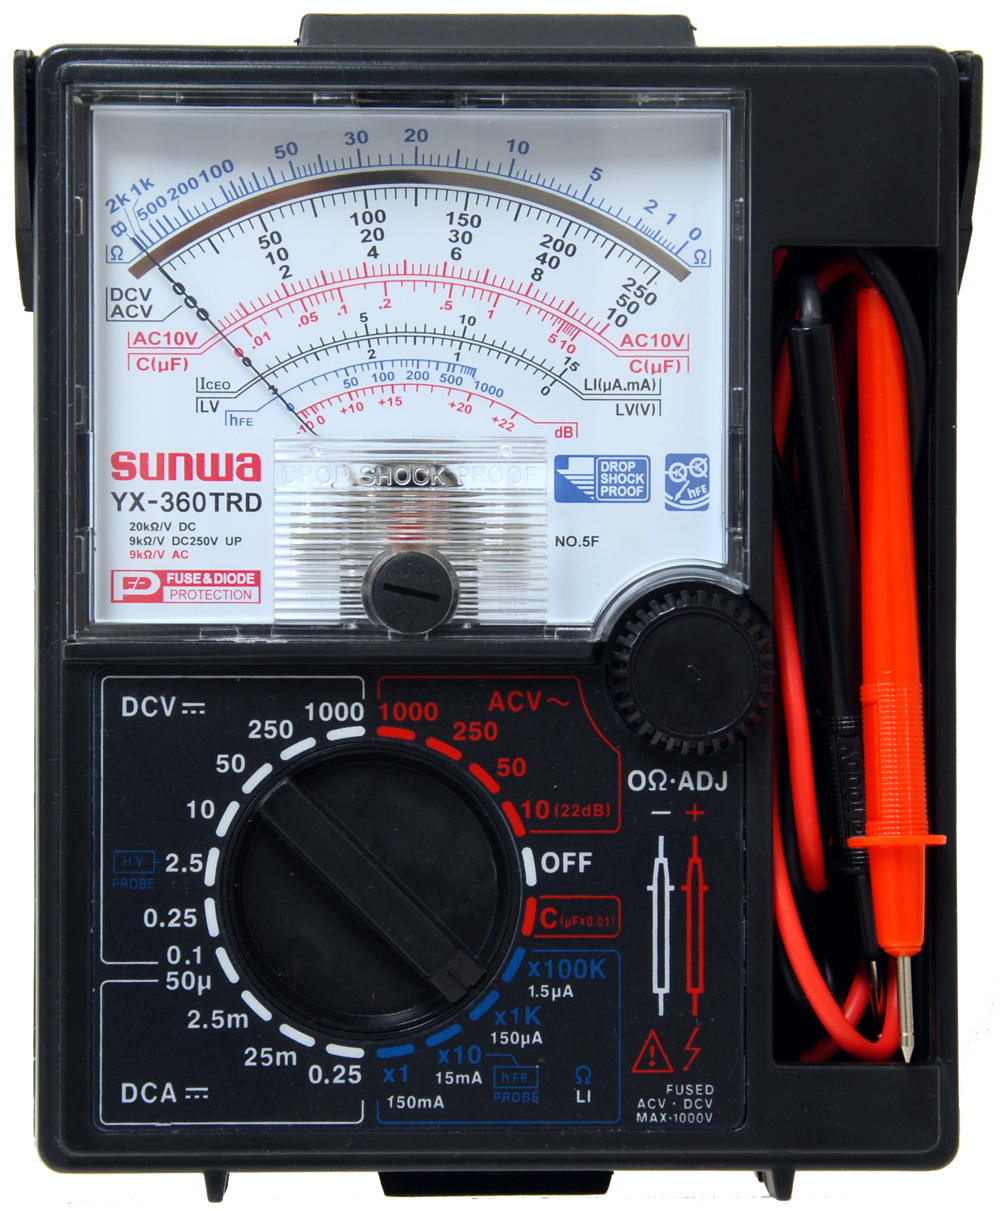 Analog Meter Needle : Appliance repair training online self paced courses very